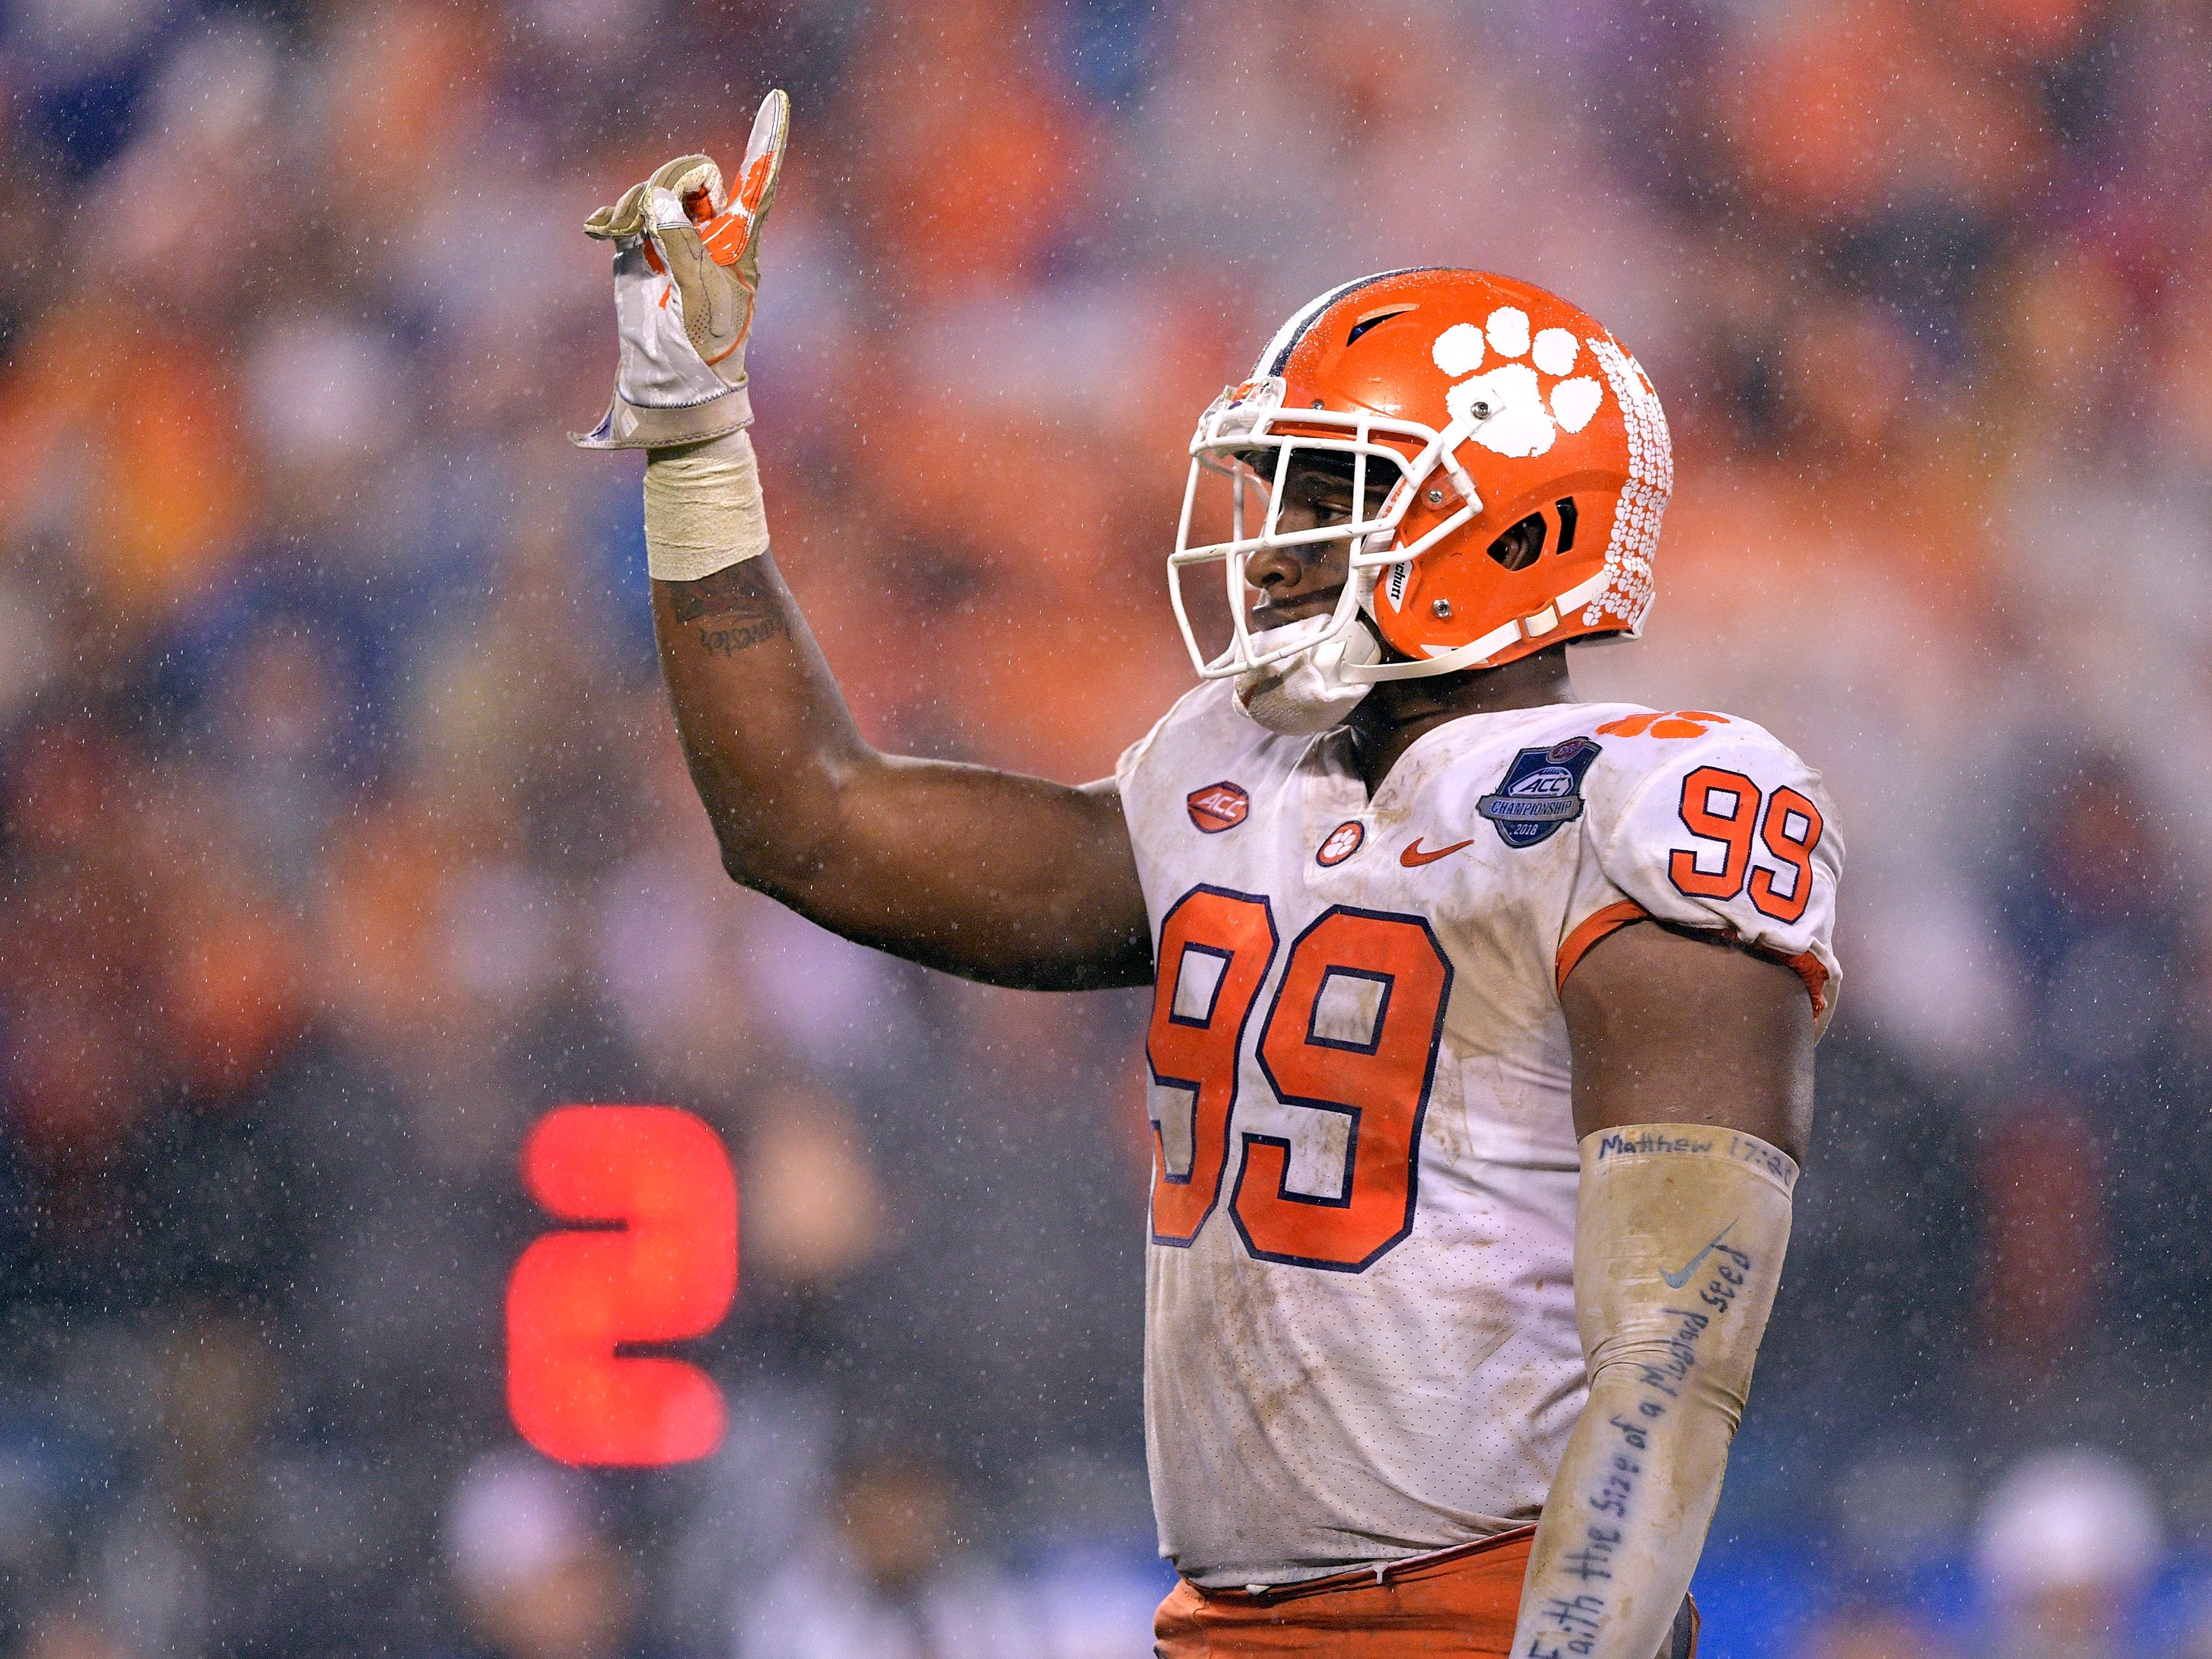 3. Clelin Ferrell, DL, Clemson: Ferrell also has the size and length to replace Ansah on the closed side of the formation. Strong, powerful and instinctual, he should be a productive run defender right out the box, while his pass-rush skills are adequate for the system, but don't stack up to Bosa's.